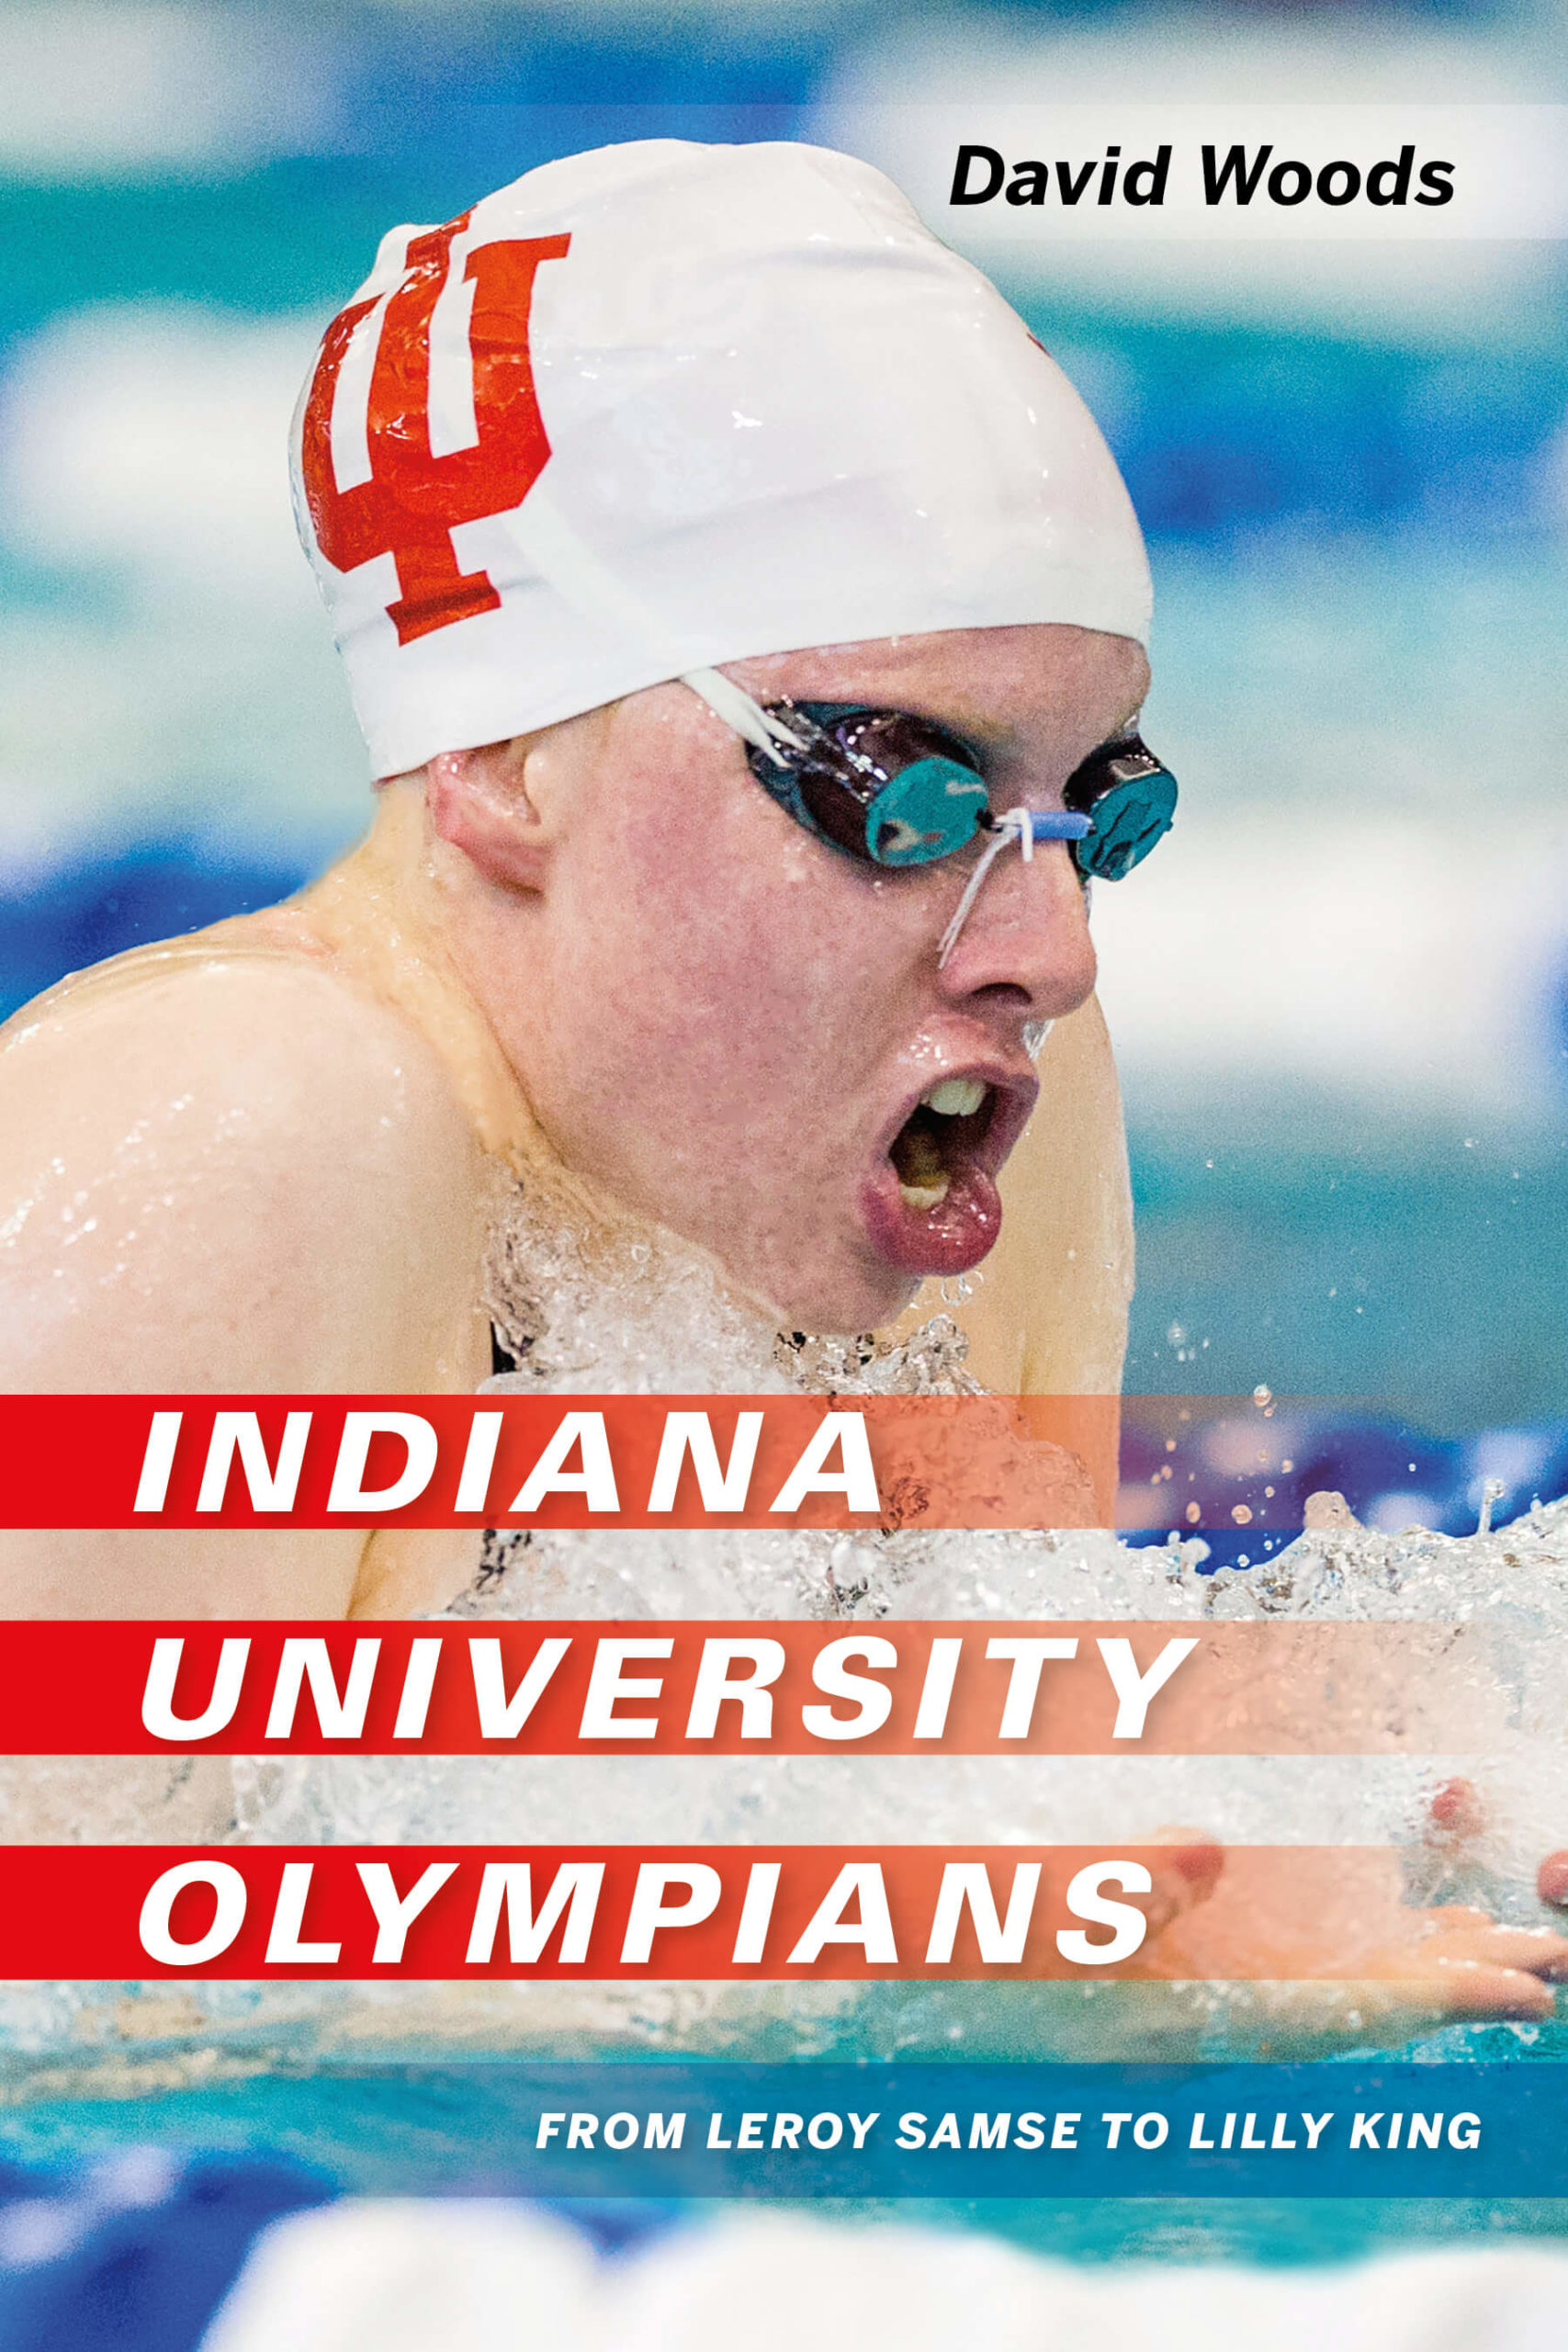 Indiana University Olympians From Leroy Samse to Lilly King by David Woods